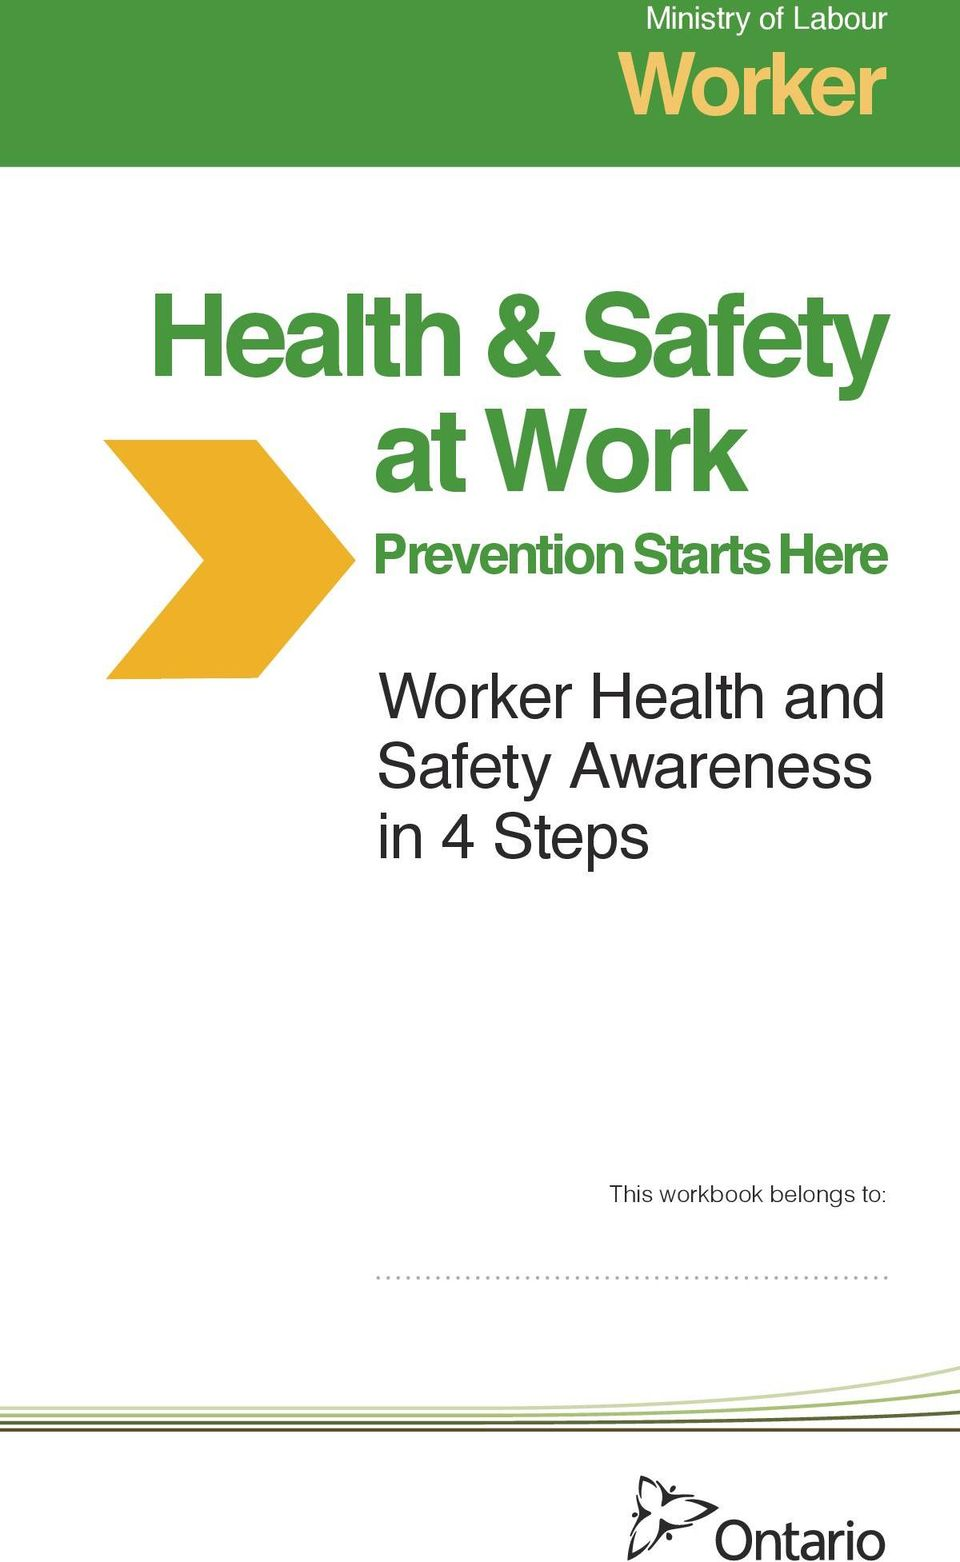 Here Worker Health and Safety